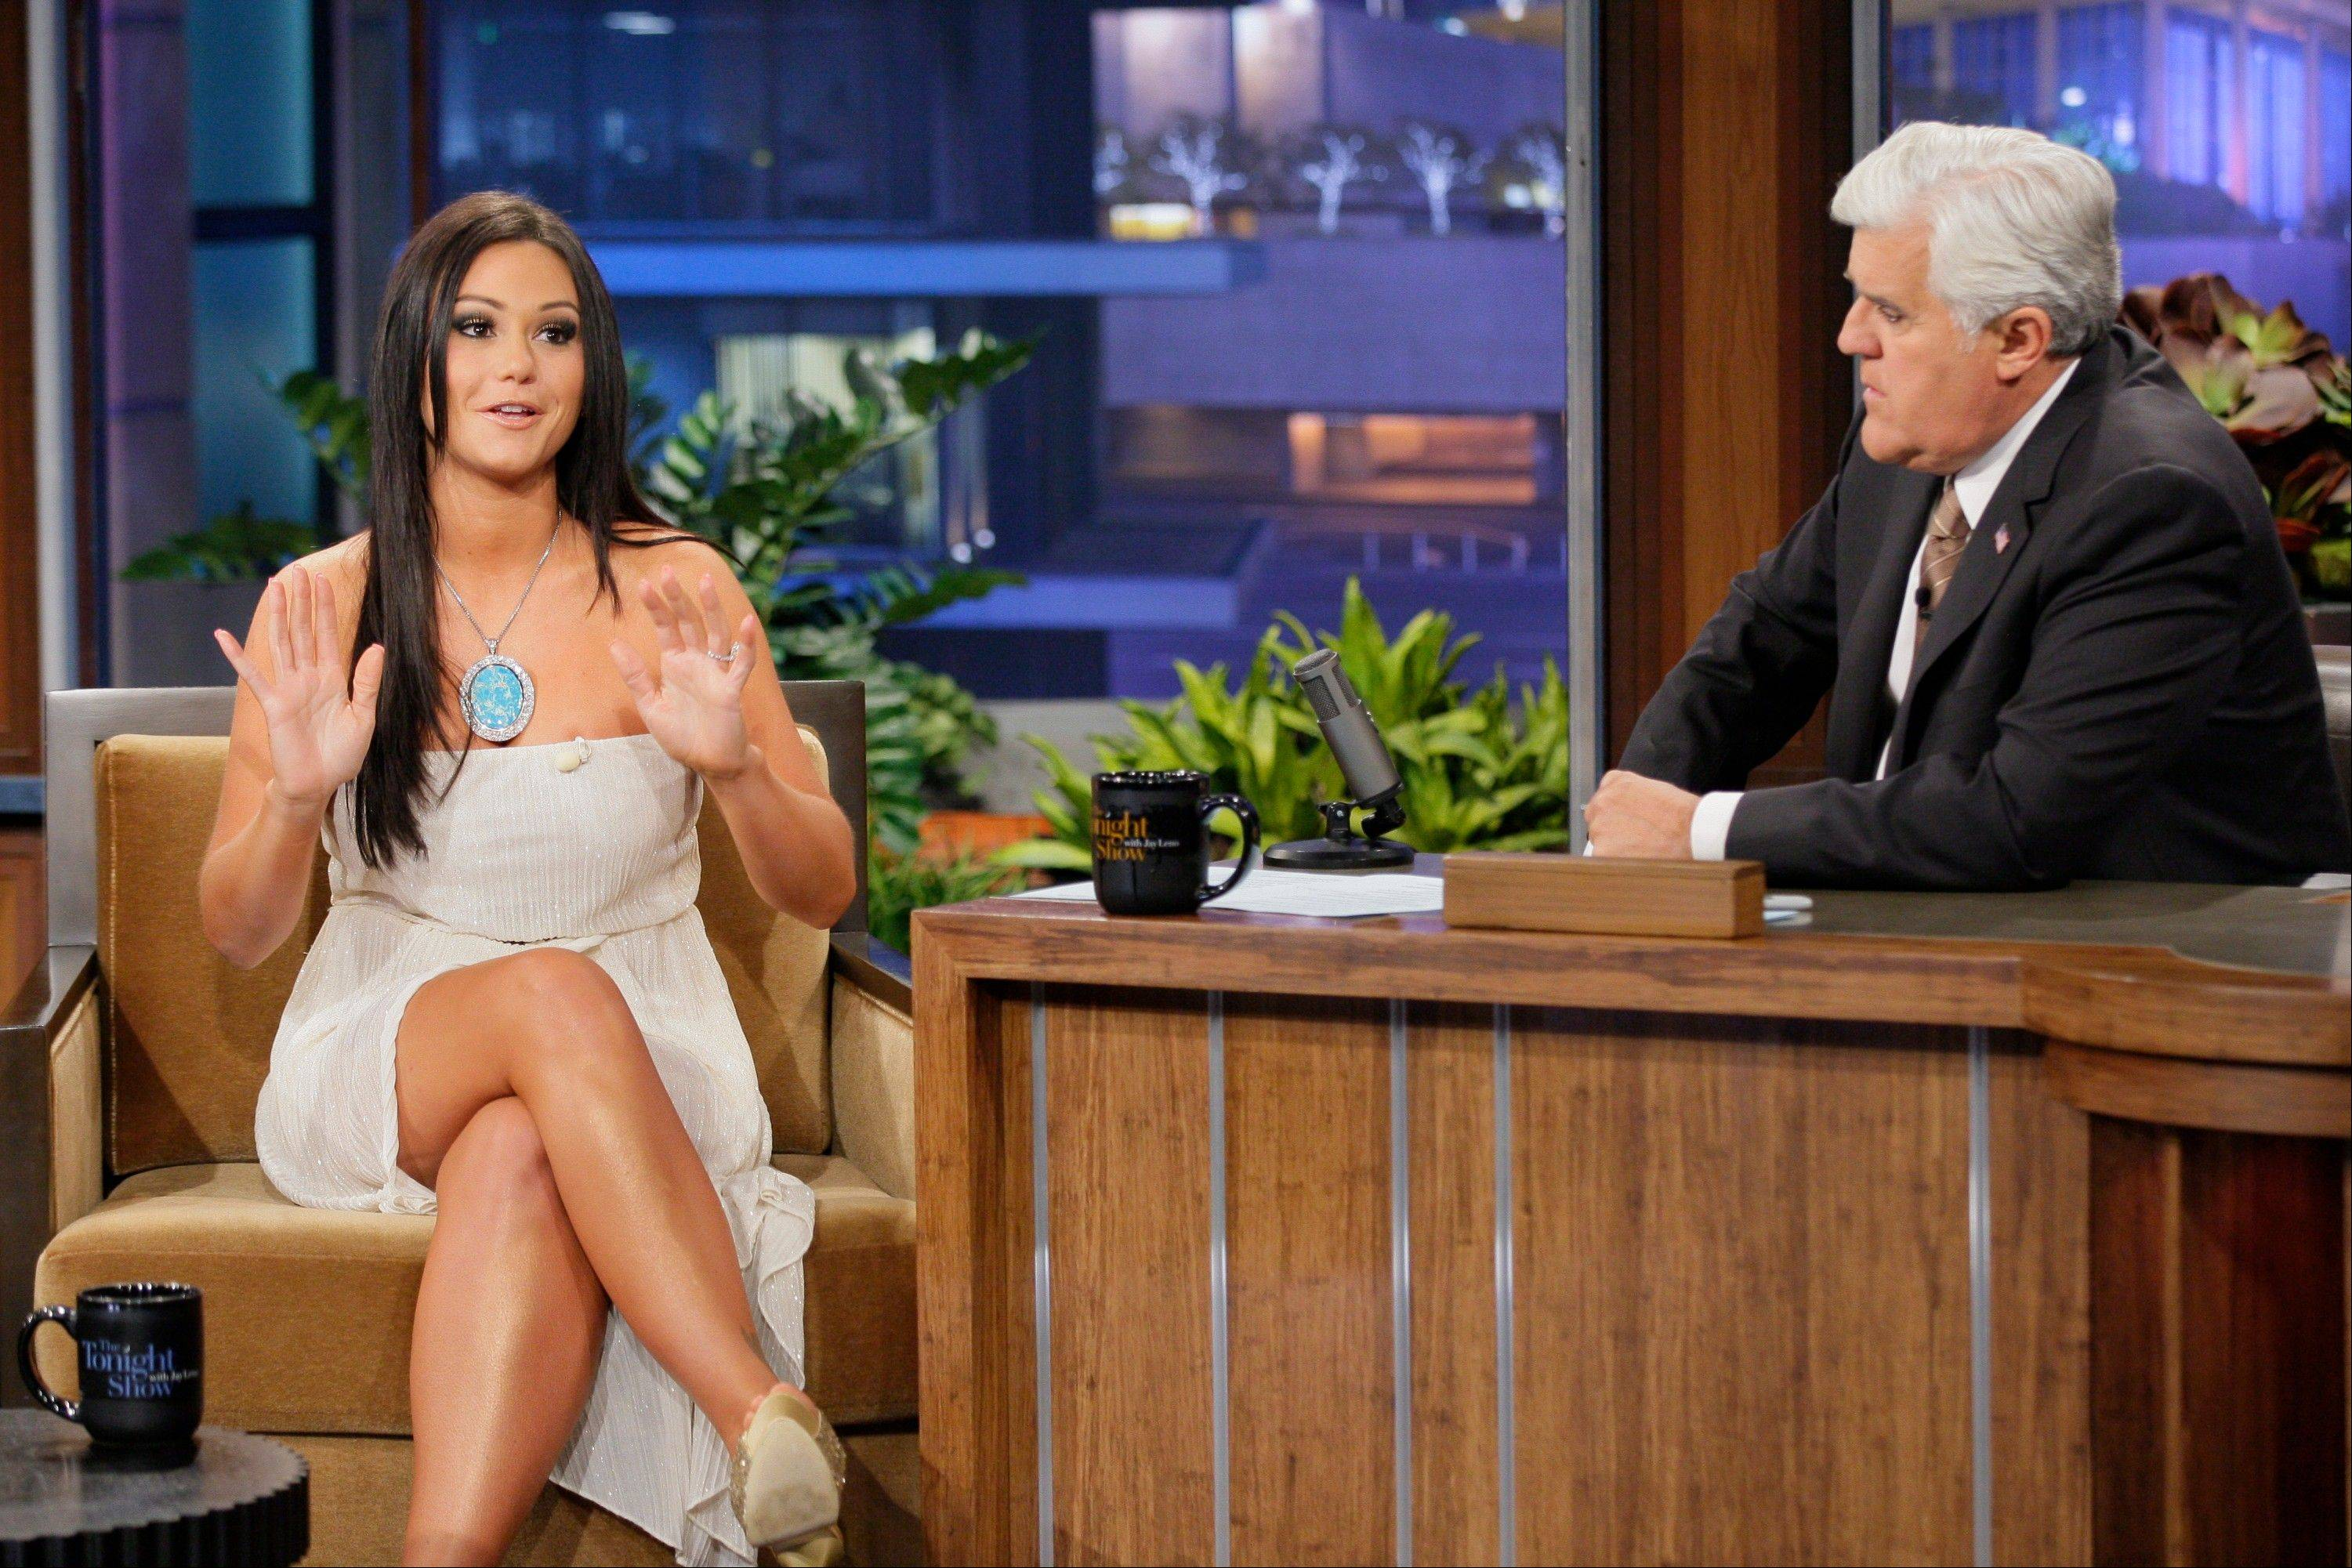 Jenni �JWoww� Farley, a cast member in the reality series �Jersey Shore,� left, appeared with host Jay Leno on �The Tonight Show with Jay Leno,� Tuesday and talked about the damage done to Seaside Heights, N.J., which was hit hard by Superstorm Sandy.